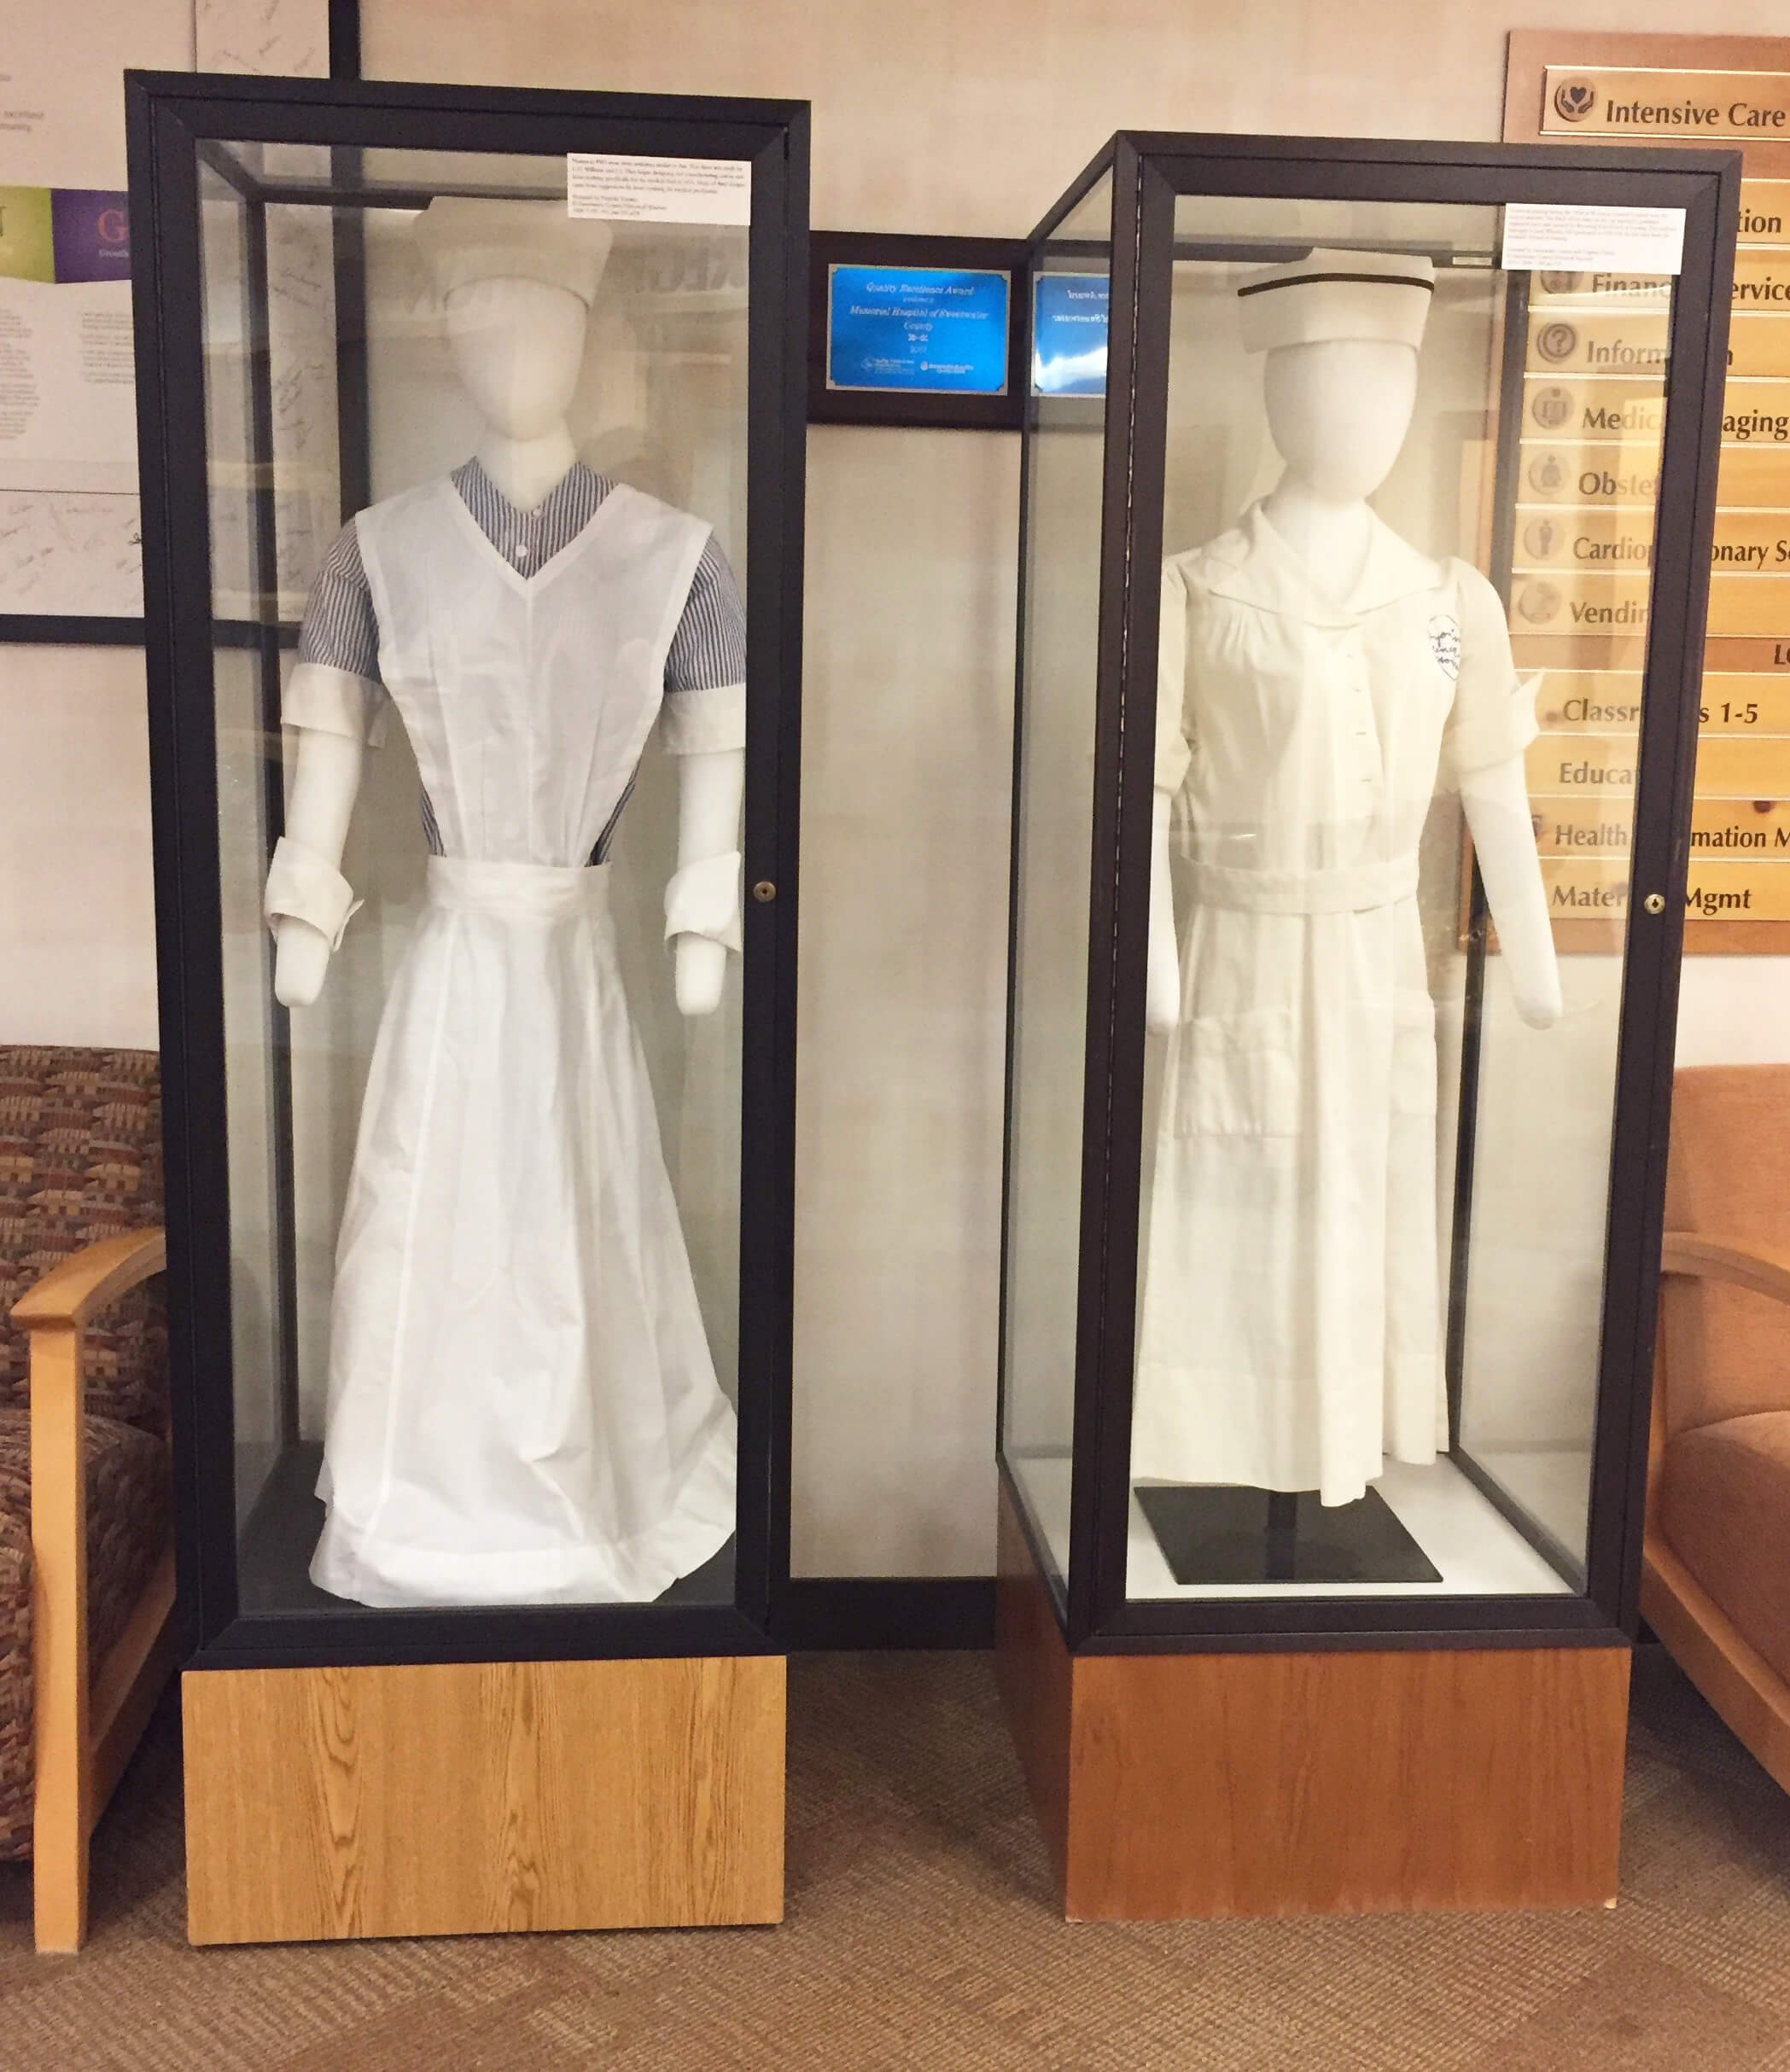 old-time nurse uniforms